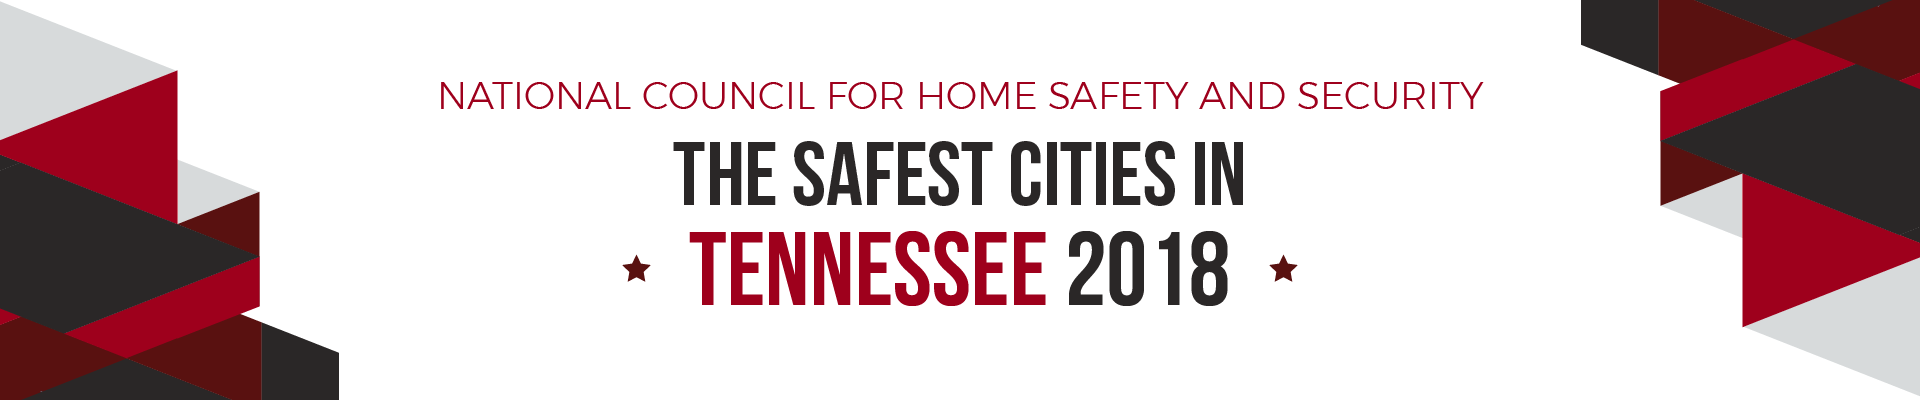 tennessee safe cities 2018